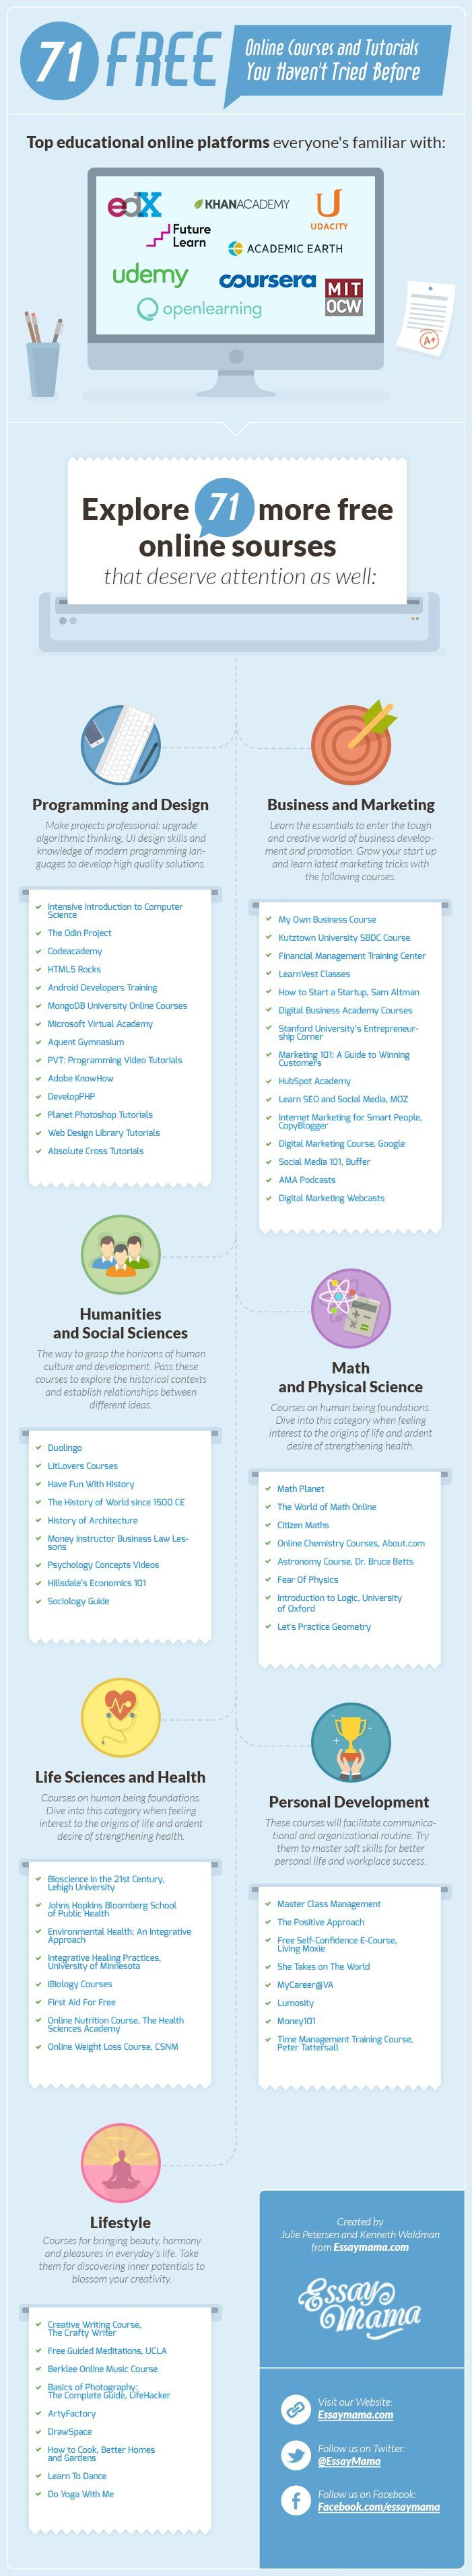 71 Free Online Courses and Tutorials You Haven't Tried Before #infographic #Education